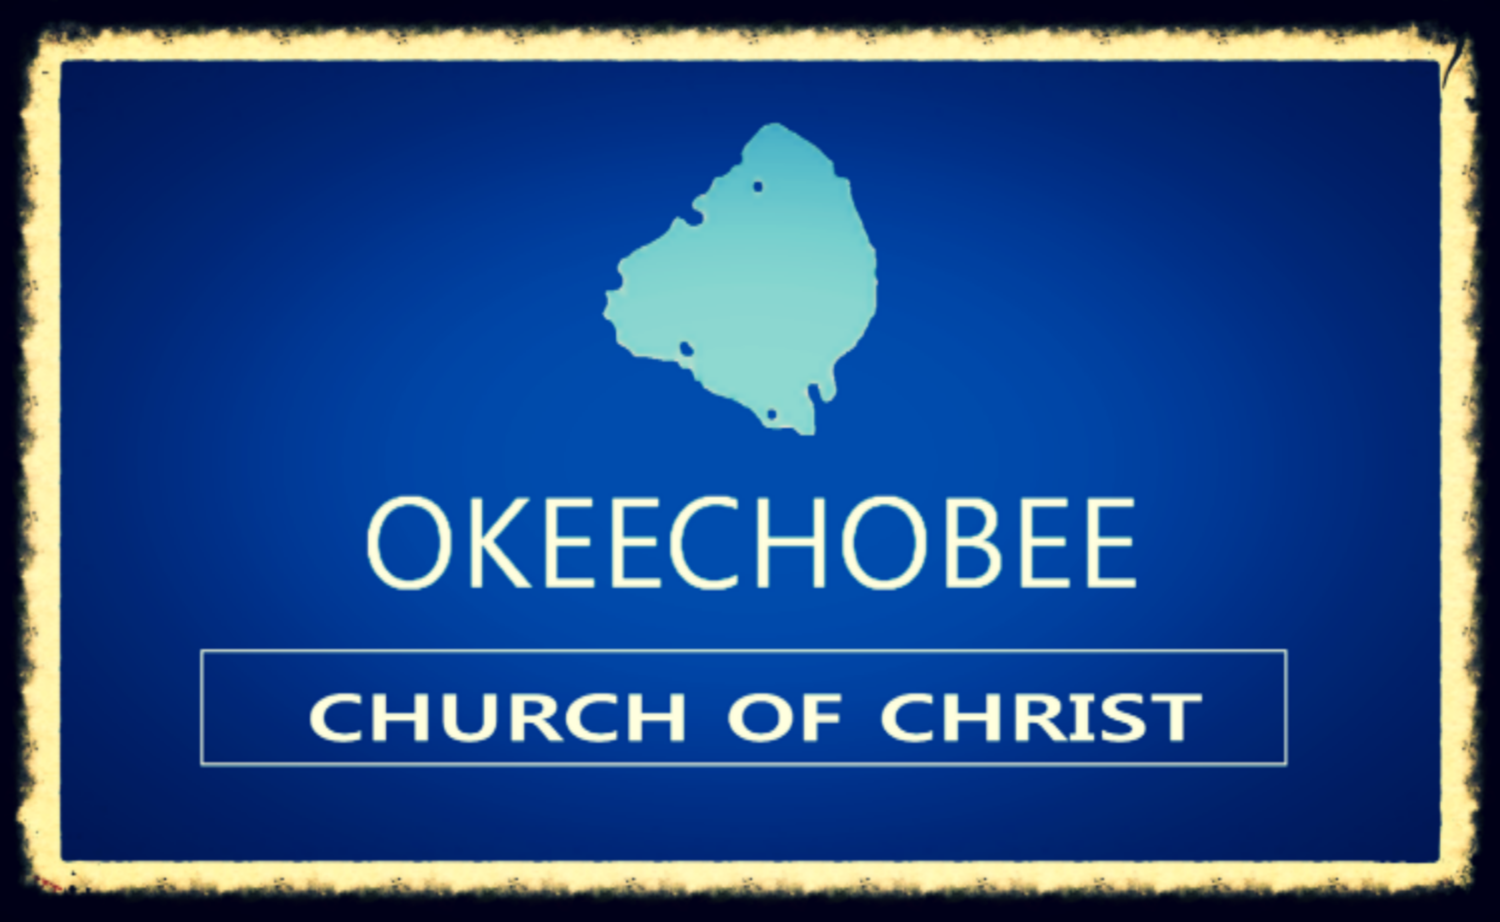 Okeechobee Church of Christ